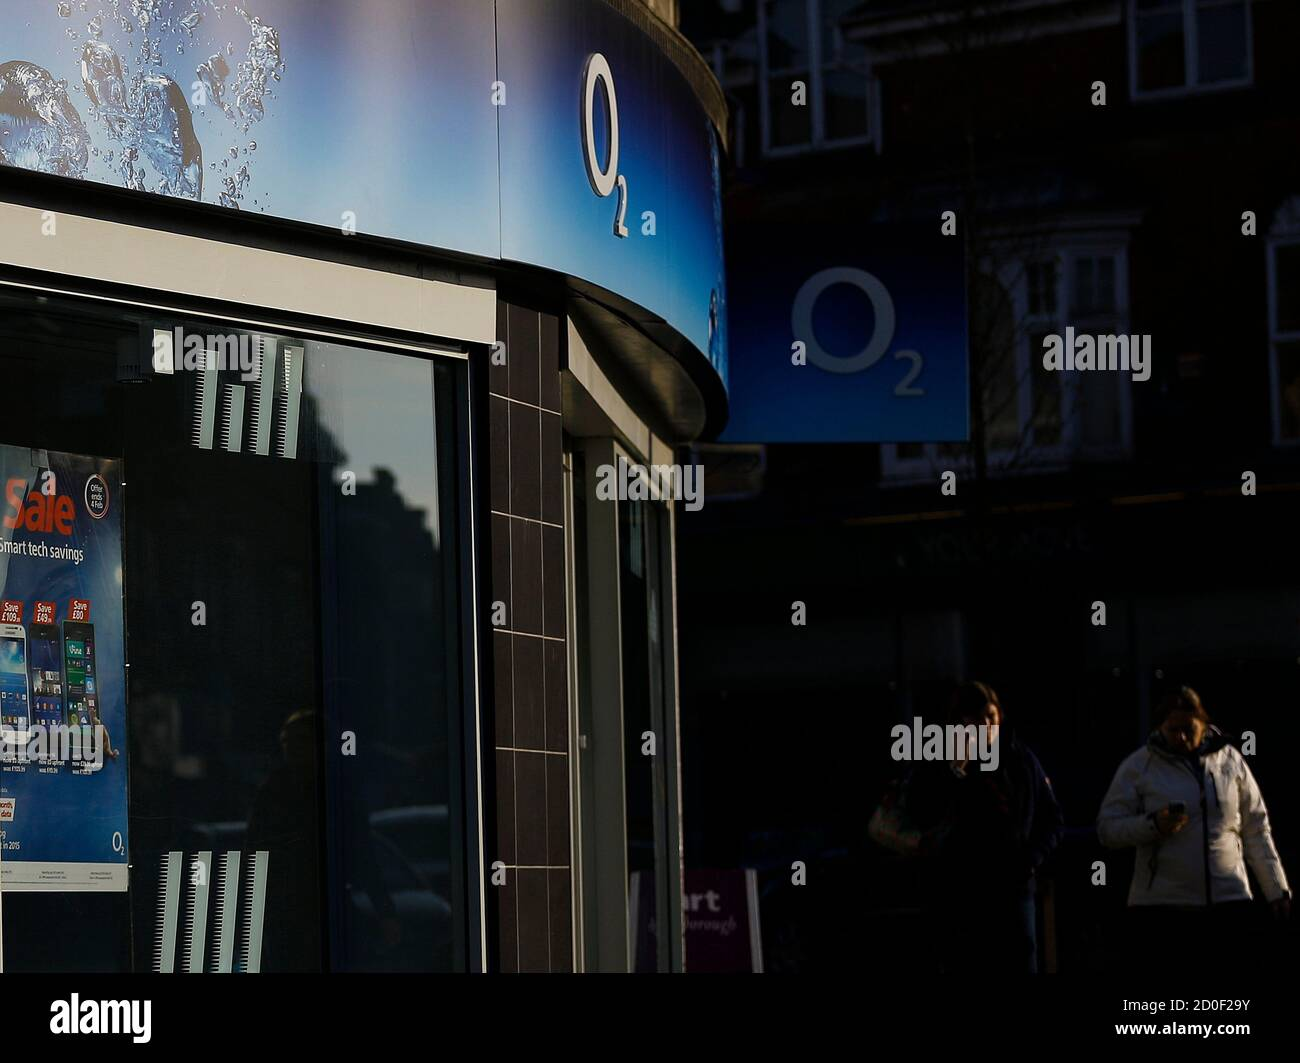 O2 arena betting shops in the uk fake winning betting slip images